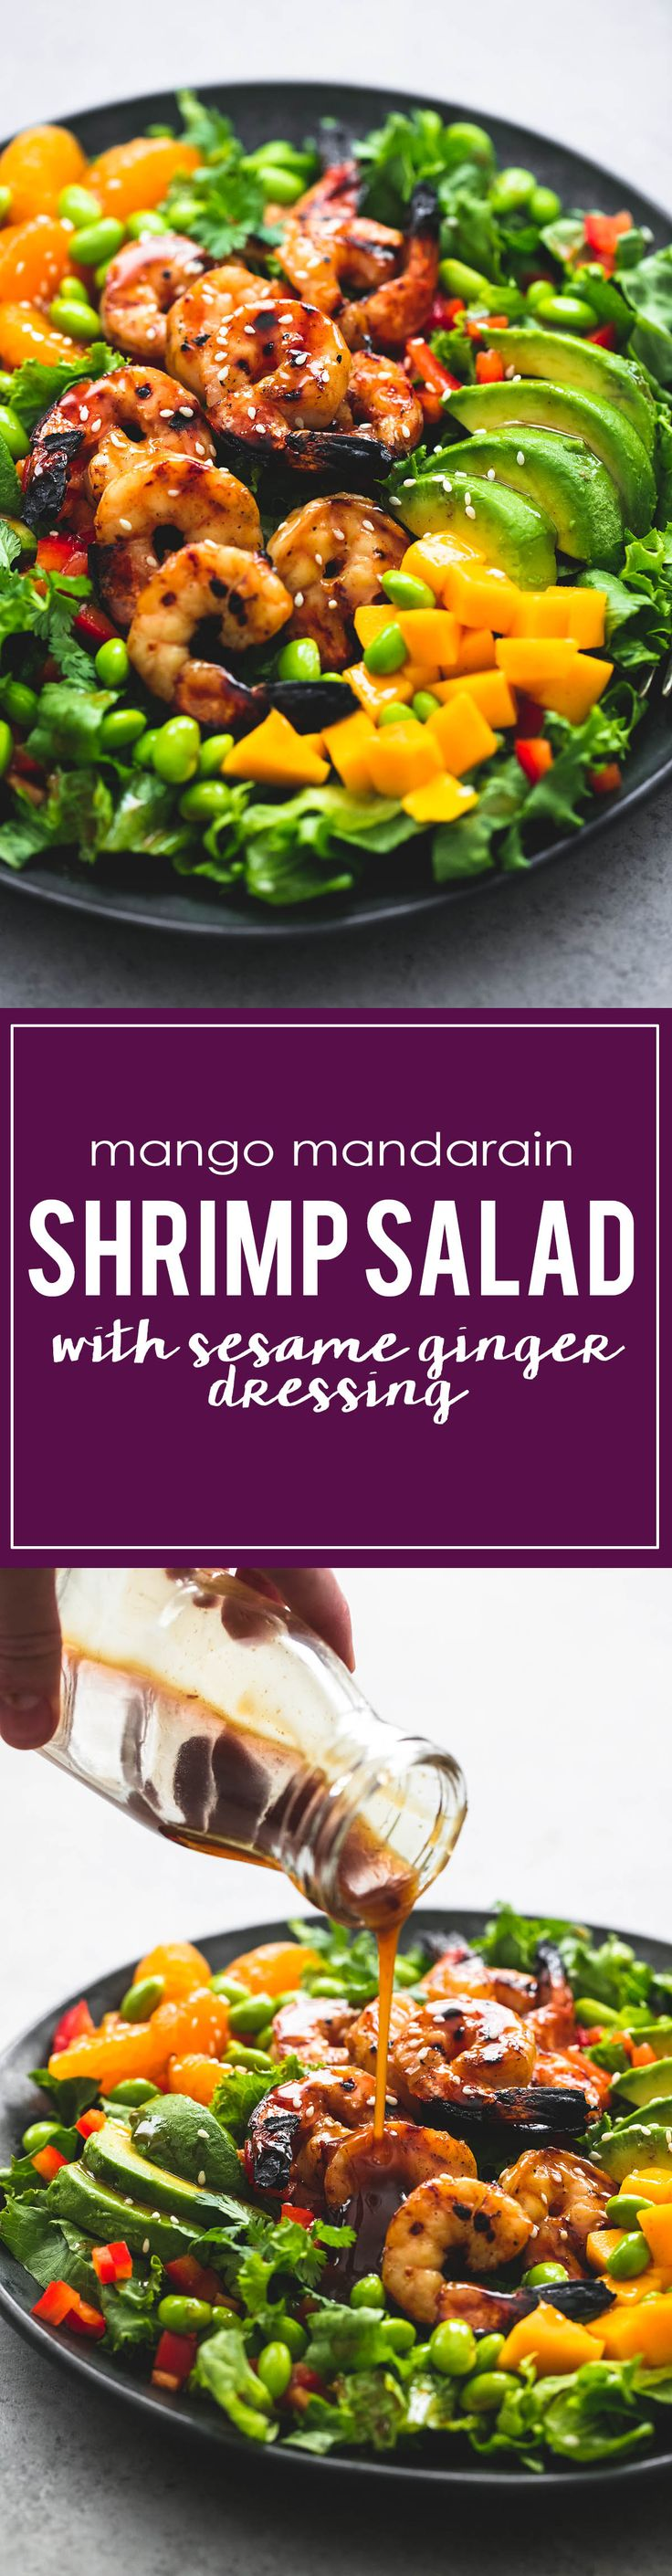 "Mango Mandarin Sesame Shrimp Salad! Would be absolutely wonderful! Would use the dressing on other salads too! Blogger says ""Big, bold Asian flavors bring this mango mandarin sesame shrimp salad to life and make it a hearty, yet simple and healthy dish!"" Definitely!"